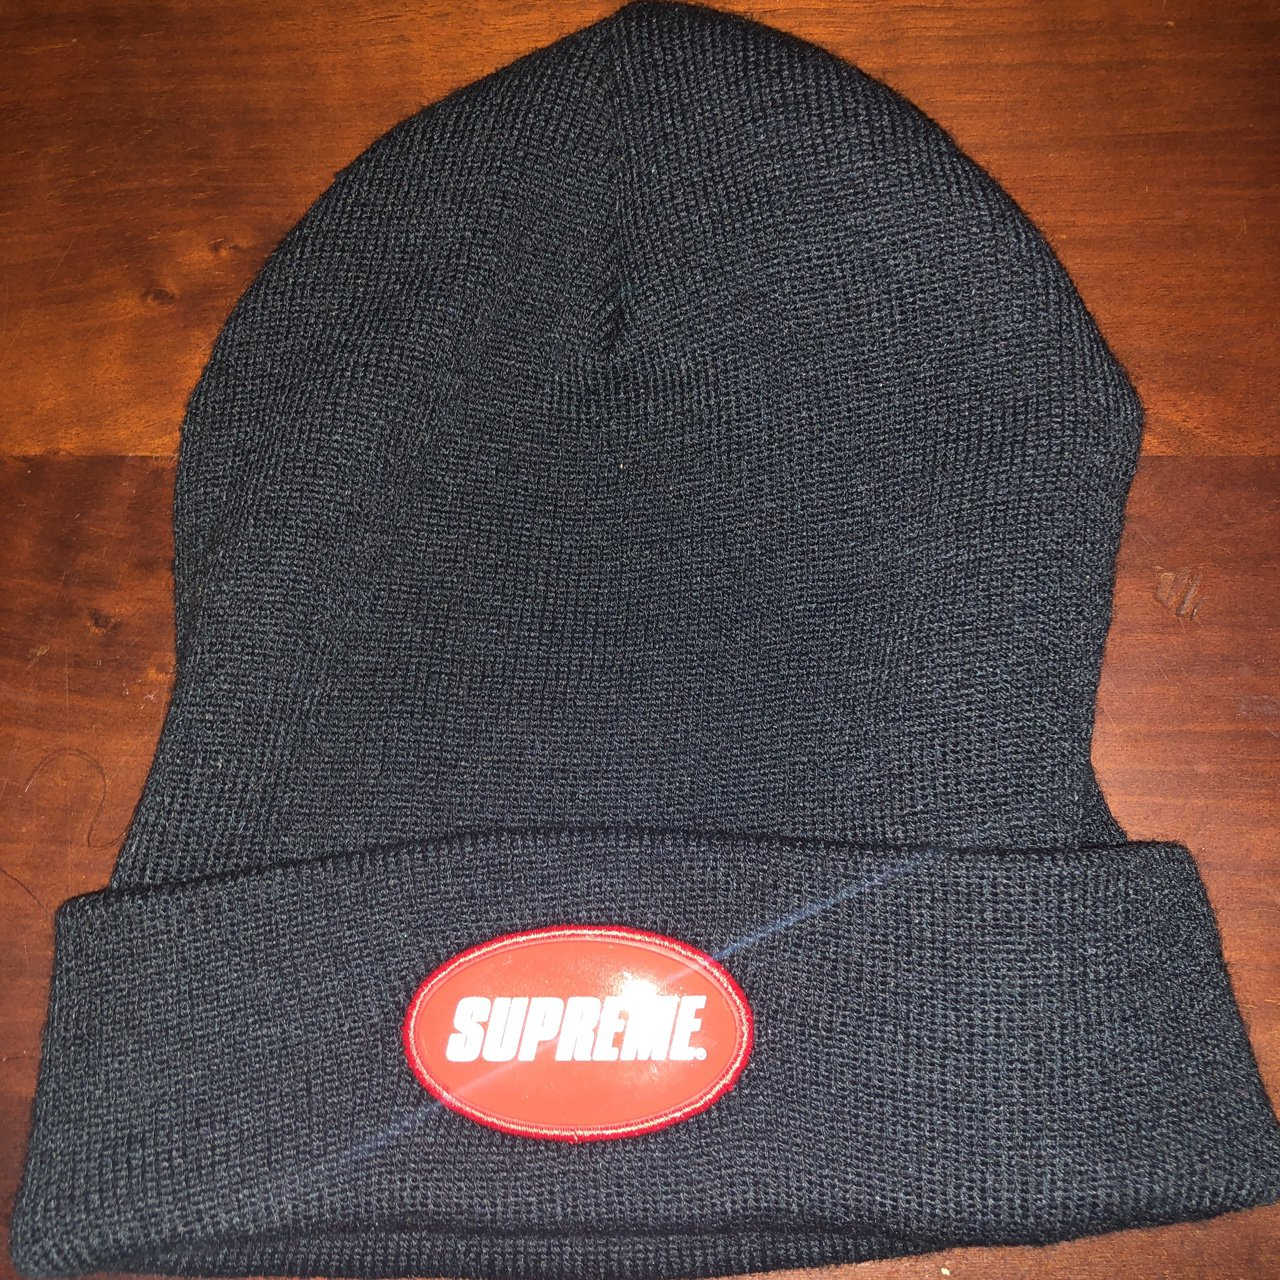 141d6a2cbd1 SUPREME BEANIE SAMPLE Never worn - Depop